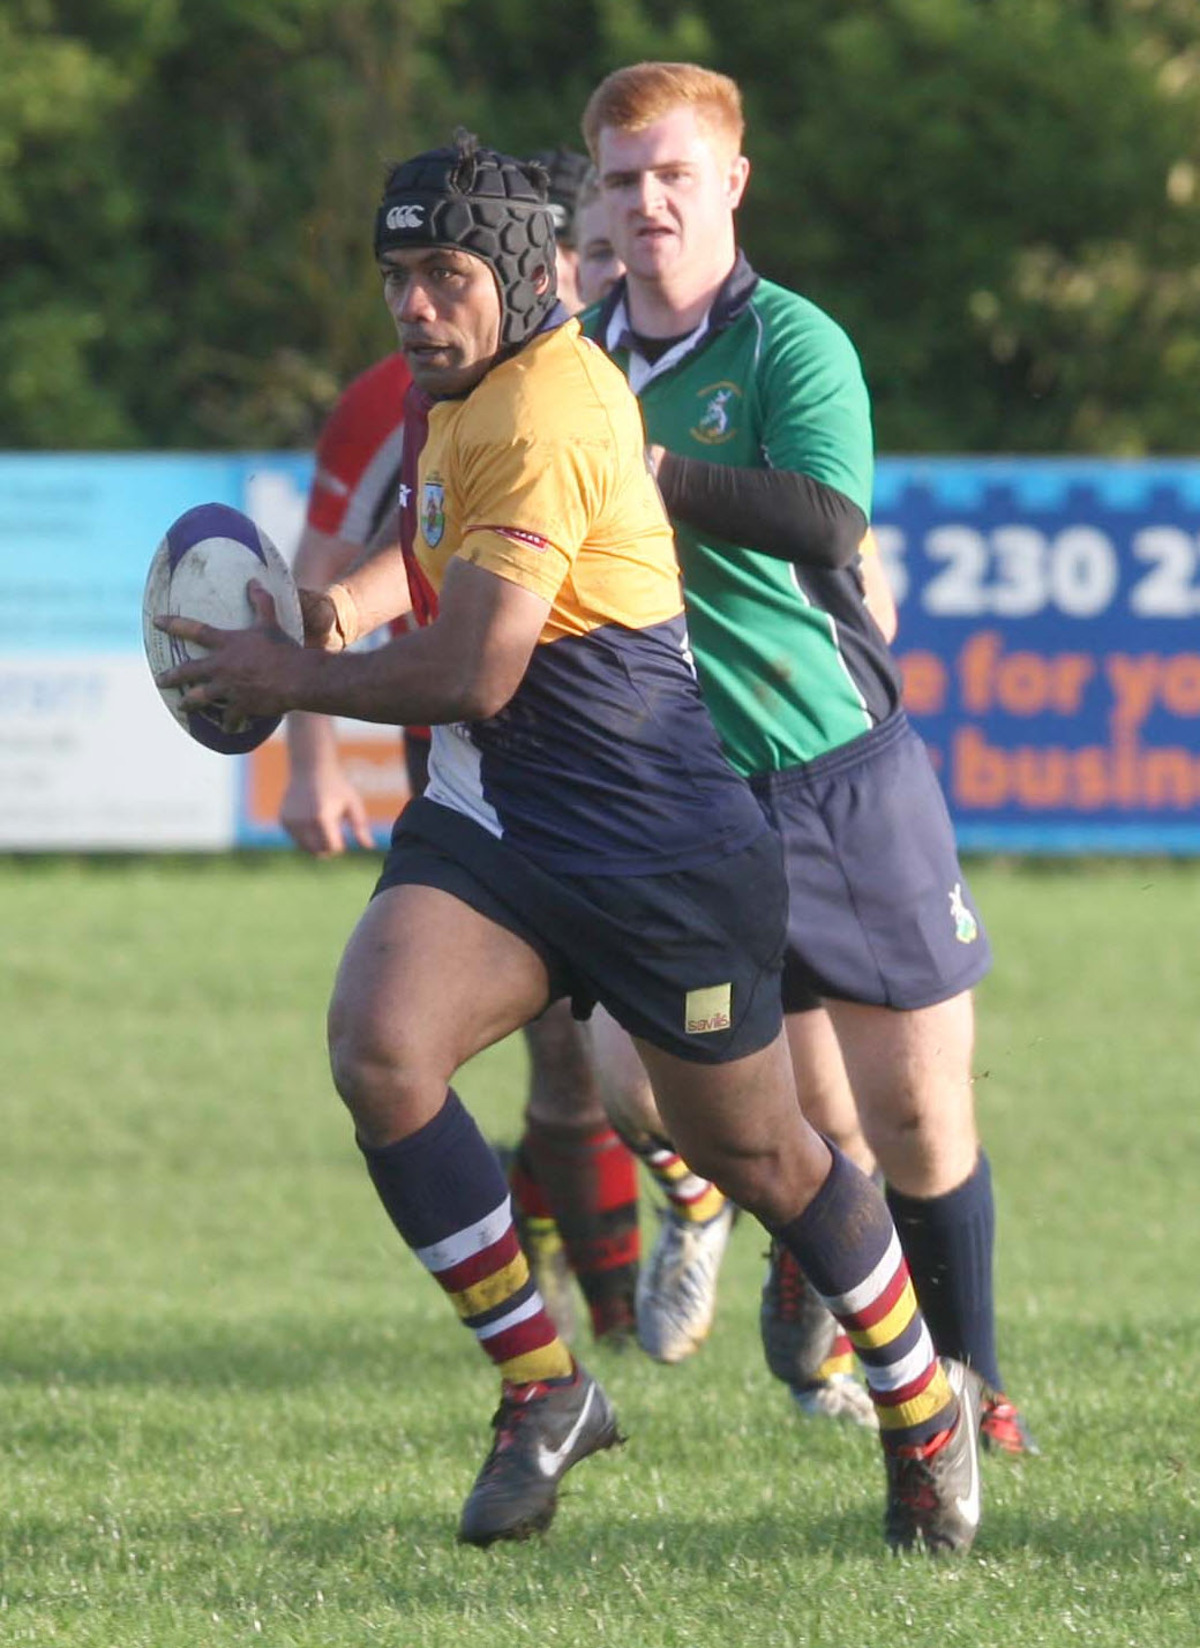 Keni Fisilau scored Oxford Harlequins' try in their 13-7 over Towcestrians